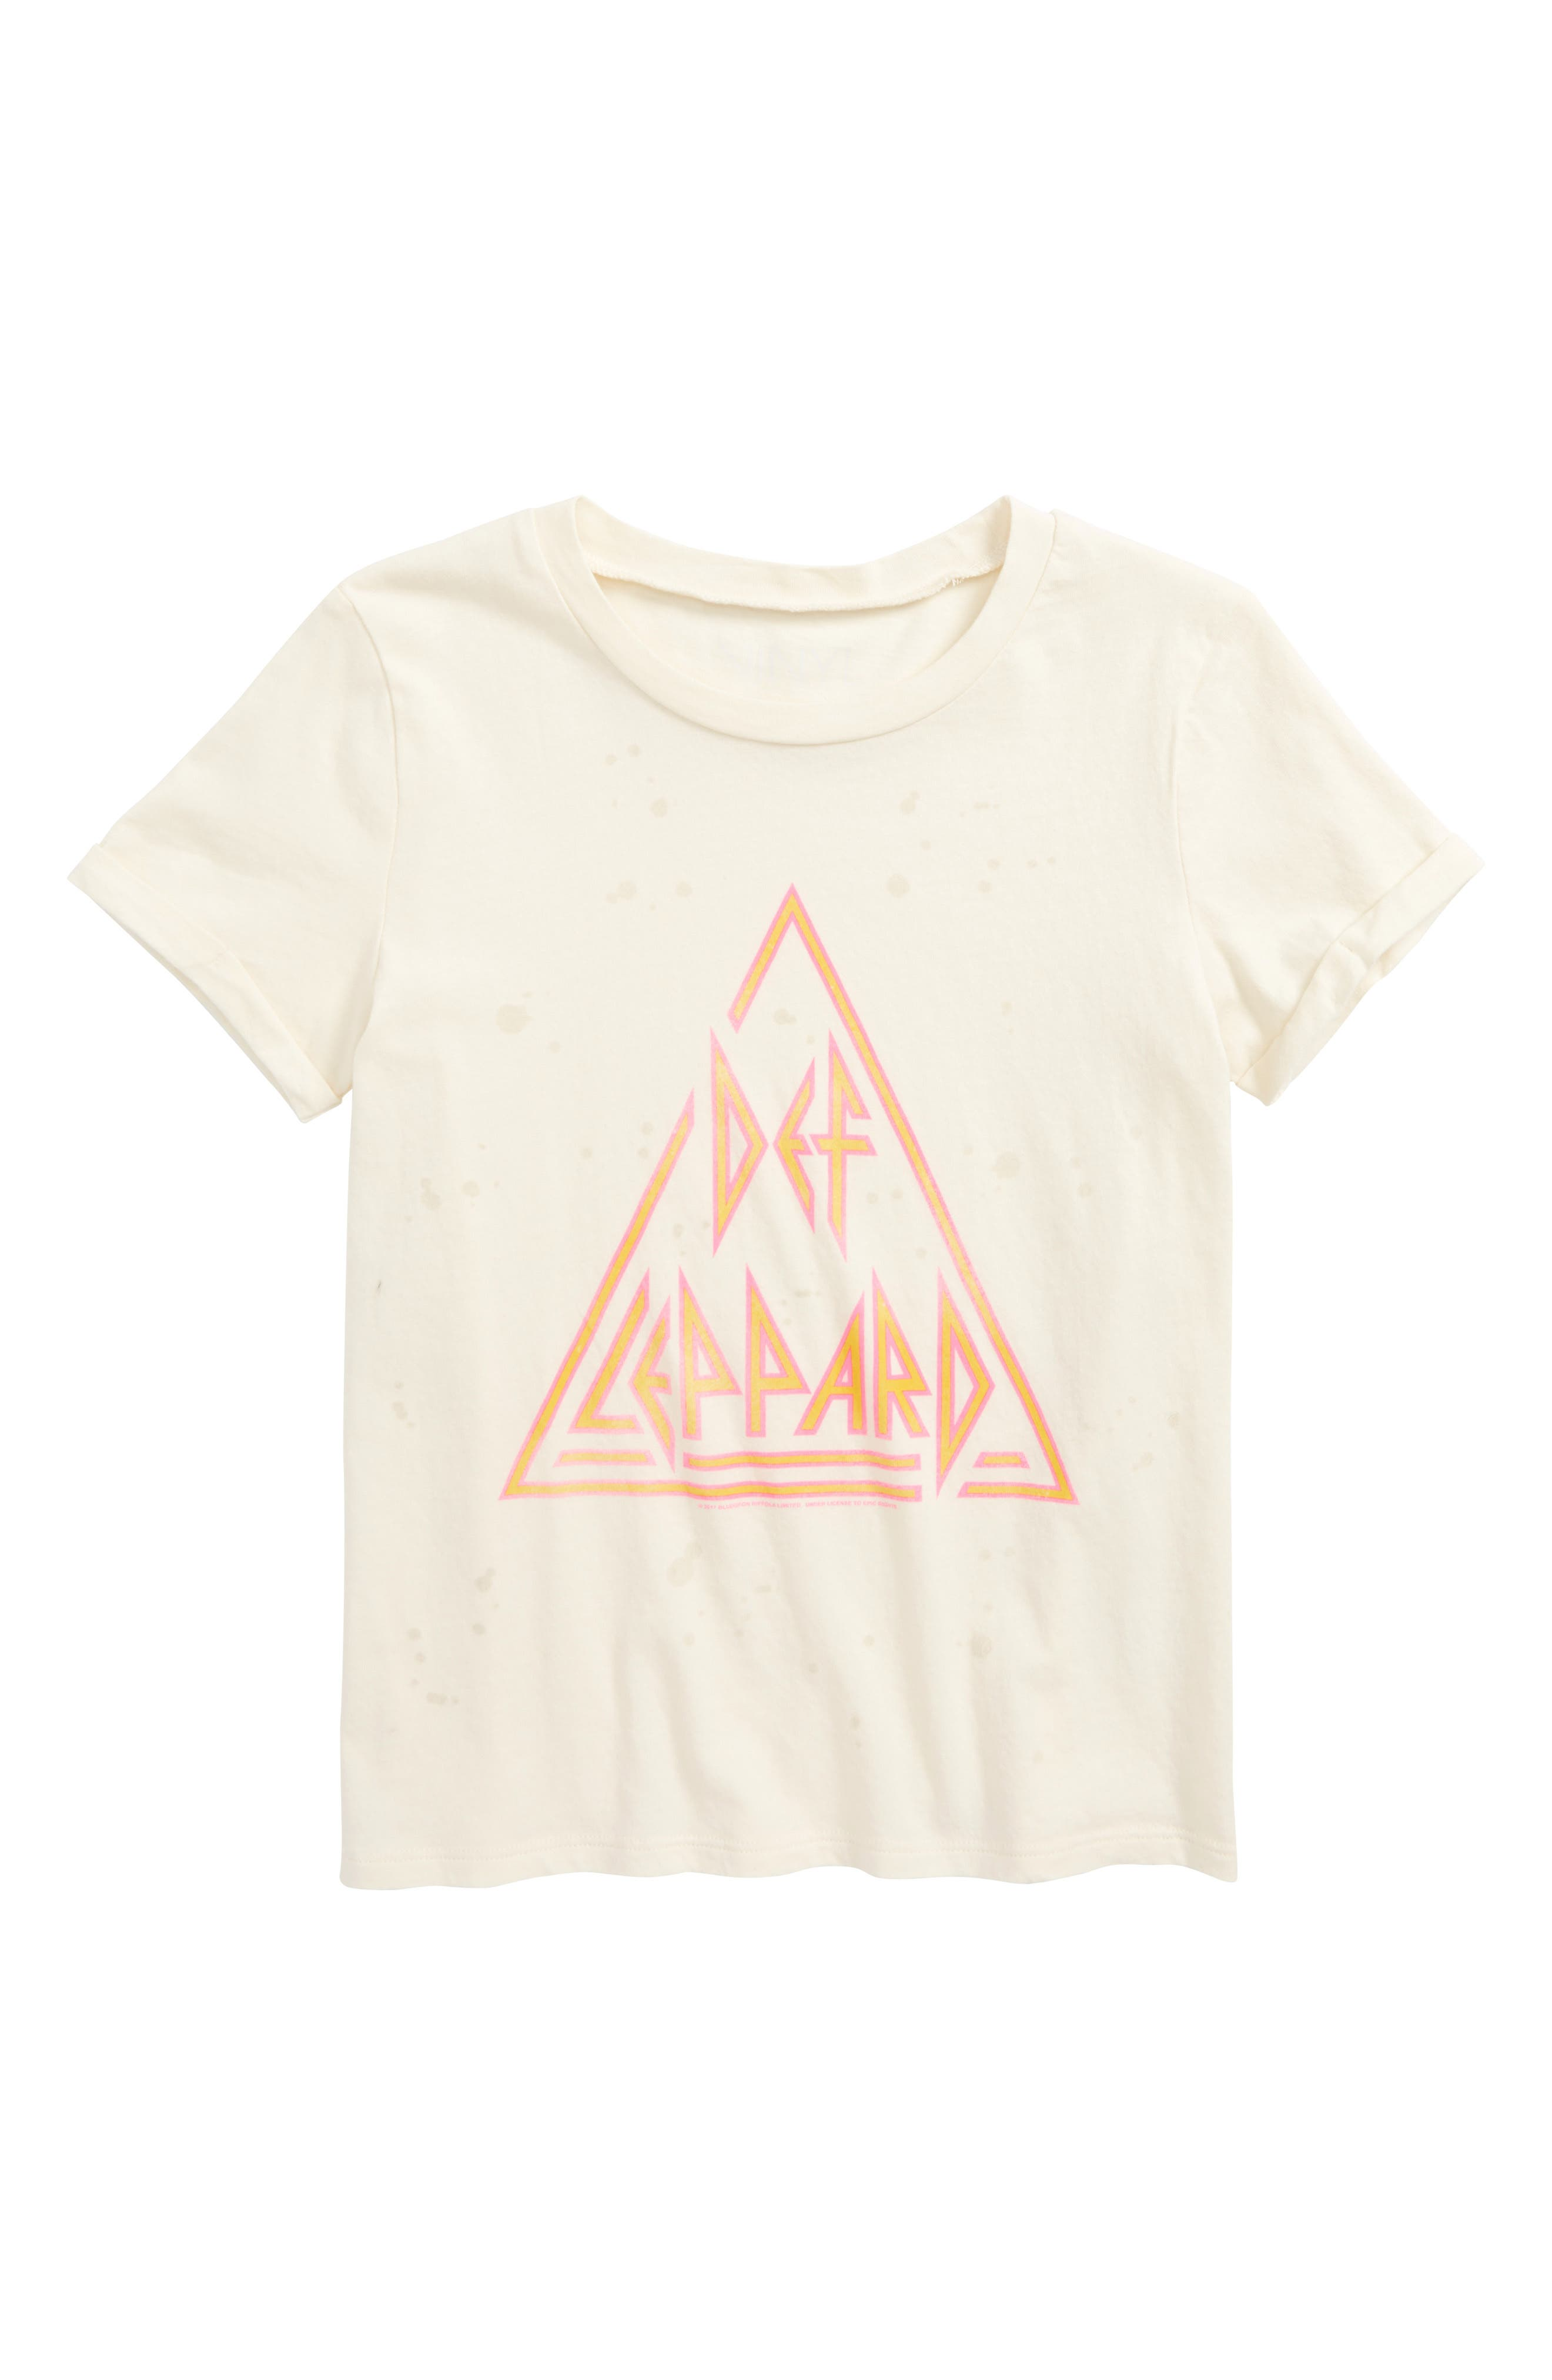 Def Leppard Graphic Tee,                         Main,                         color, 901